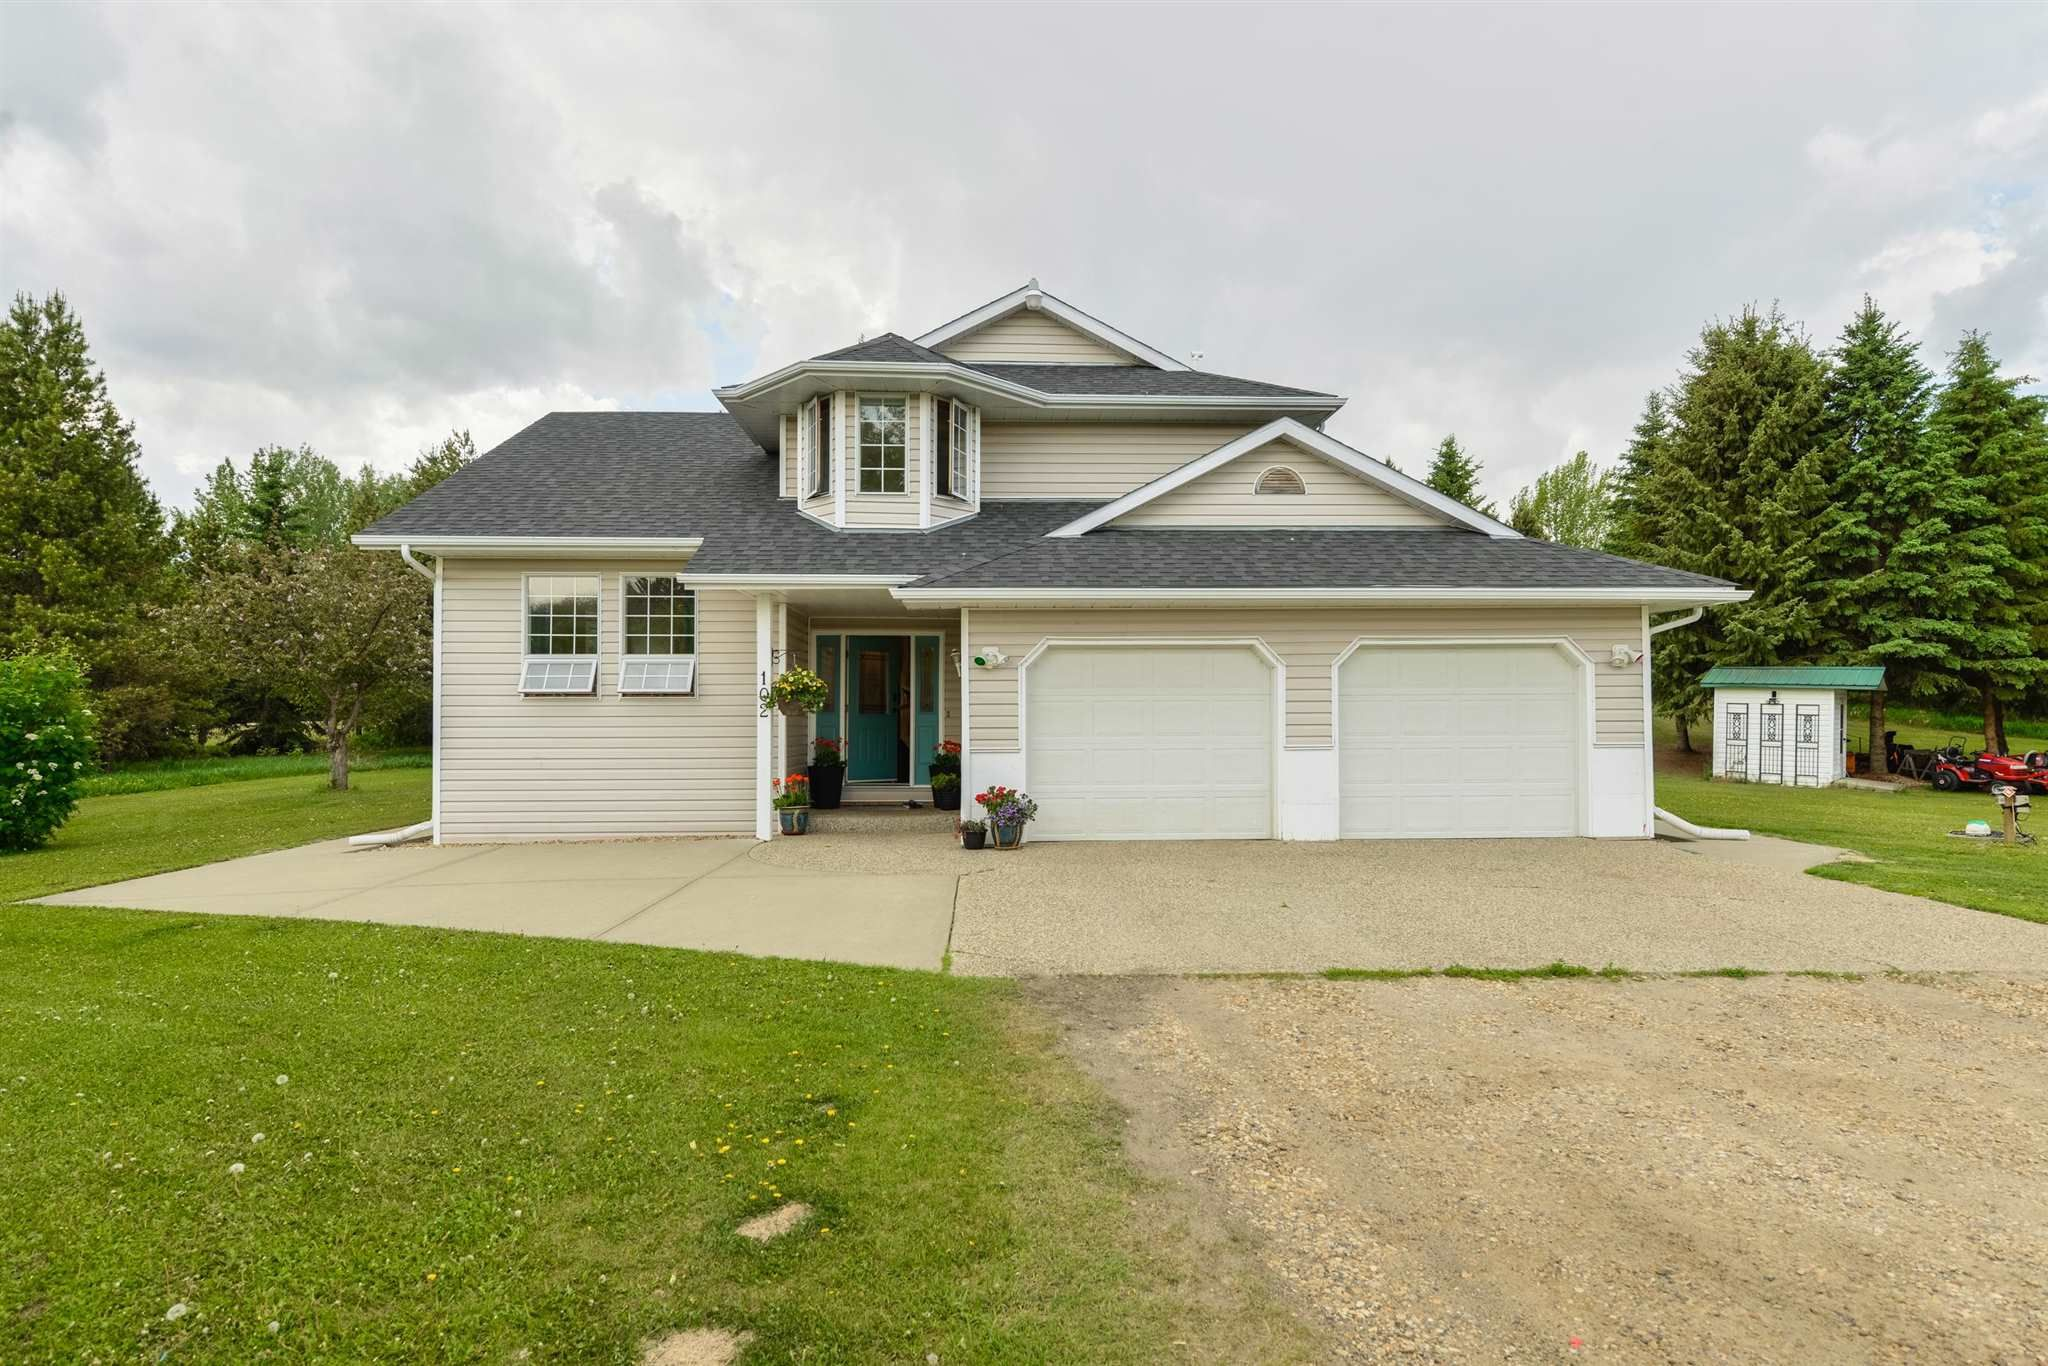 Main Photo: 102 52222 RGE RD 274: Rural Parkland County House for sale : MLS®# E4247964